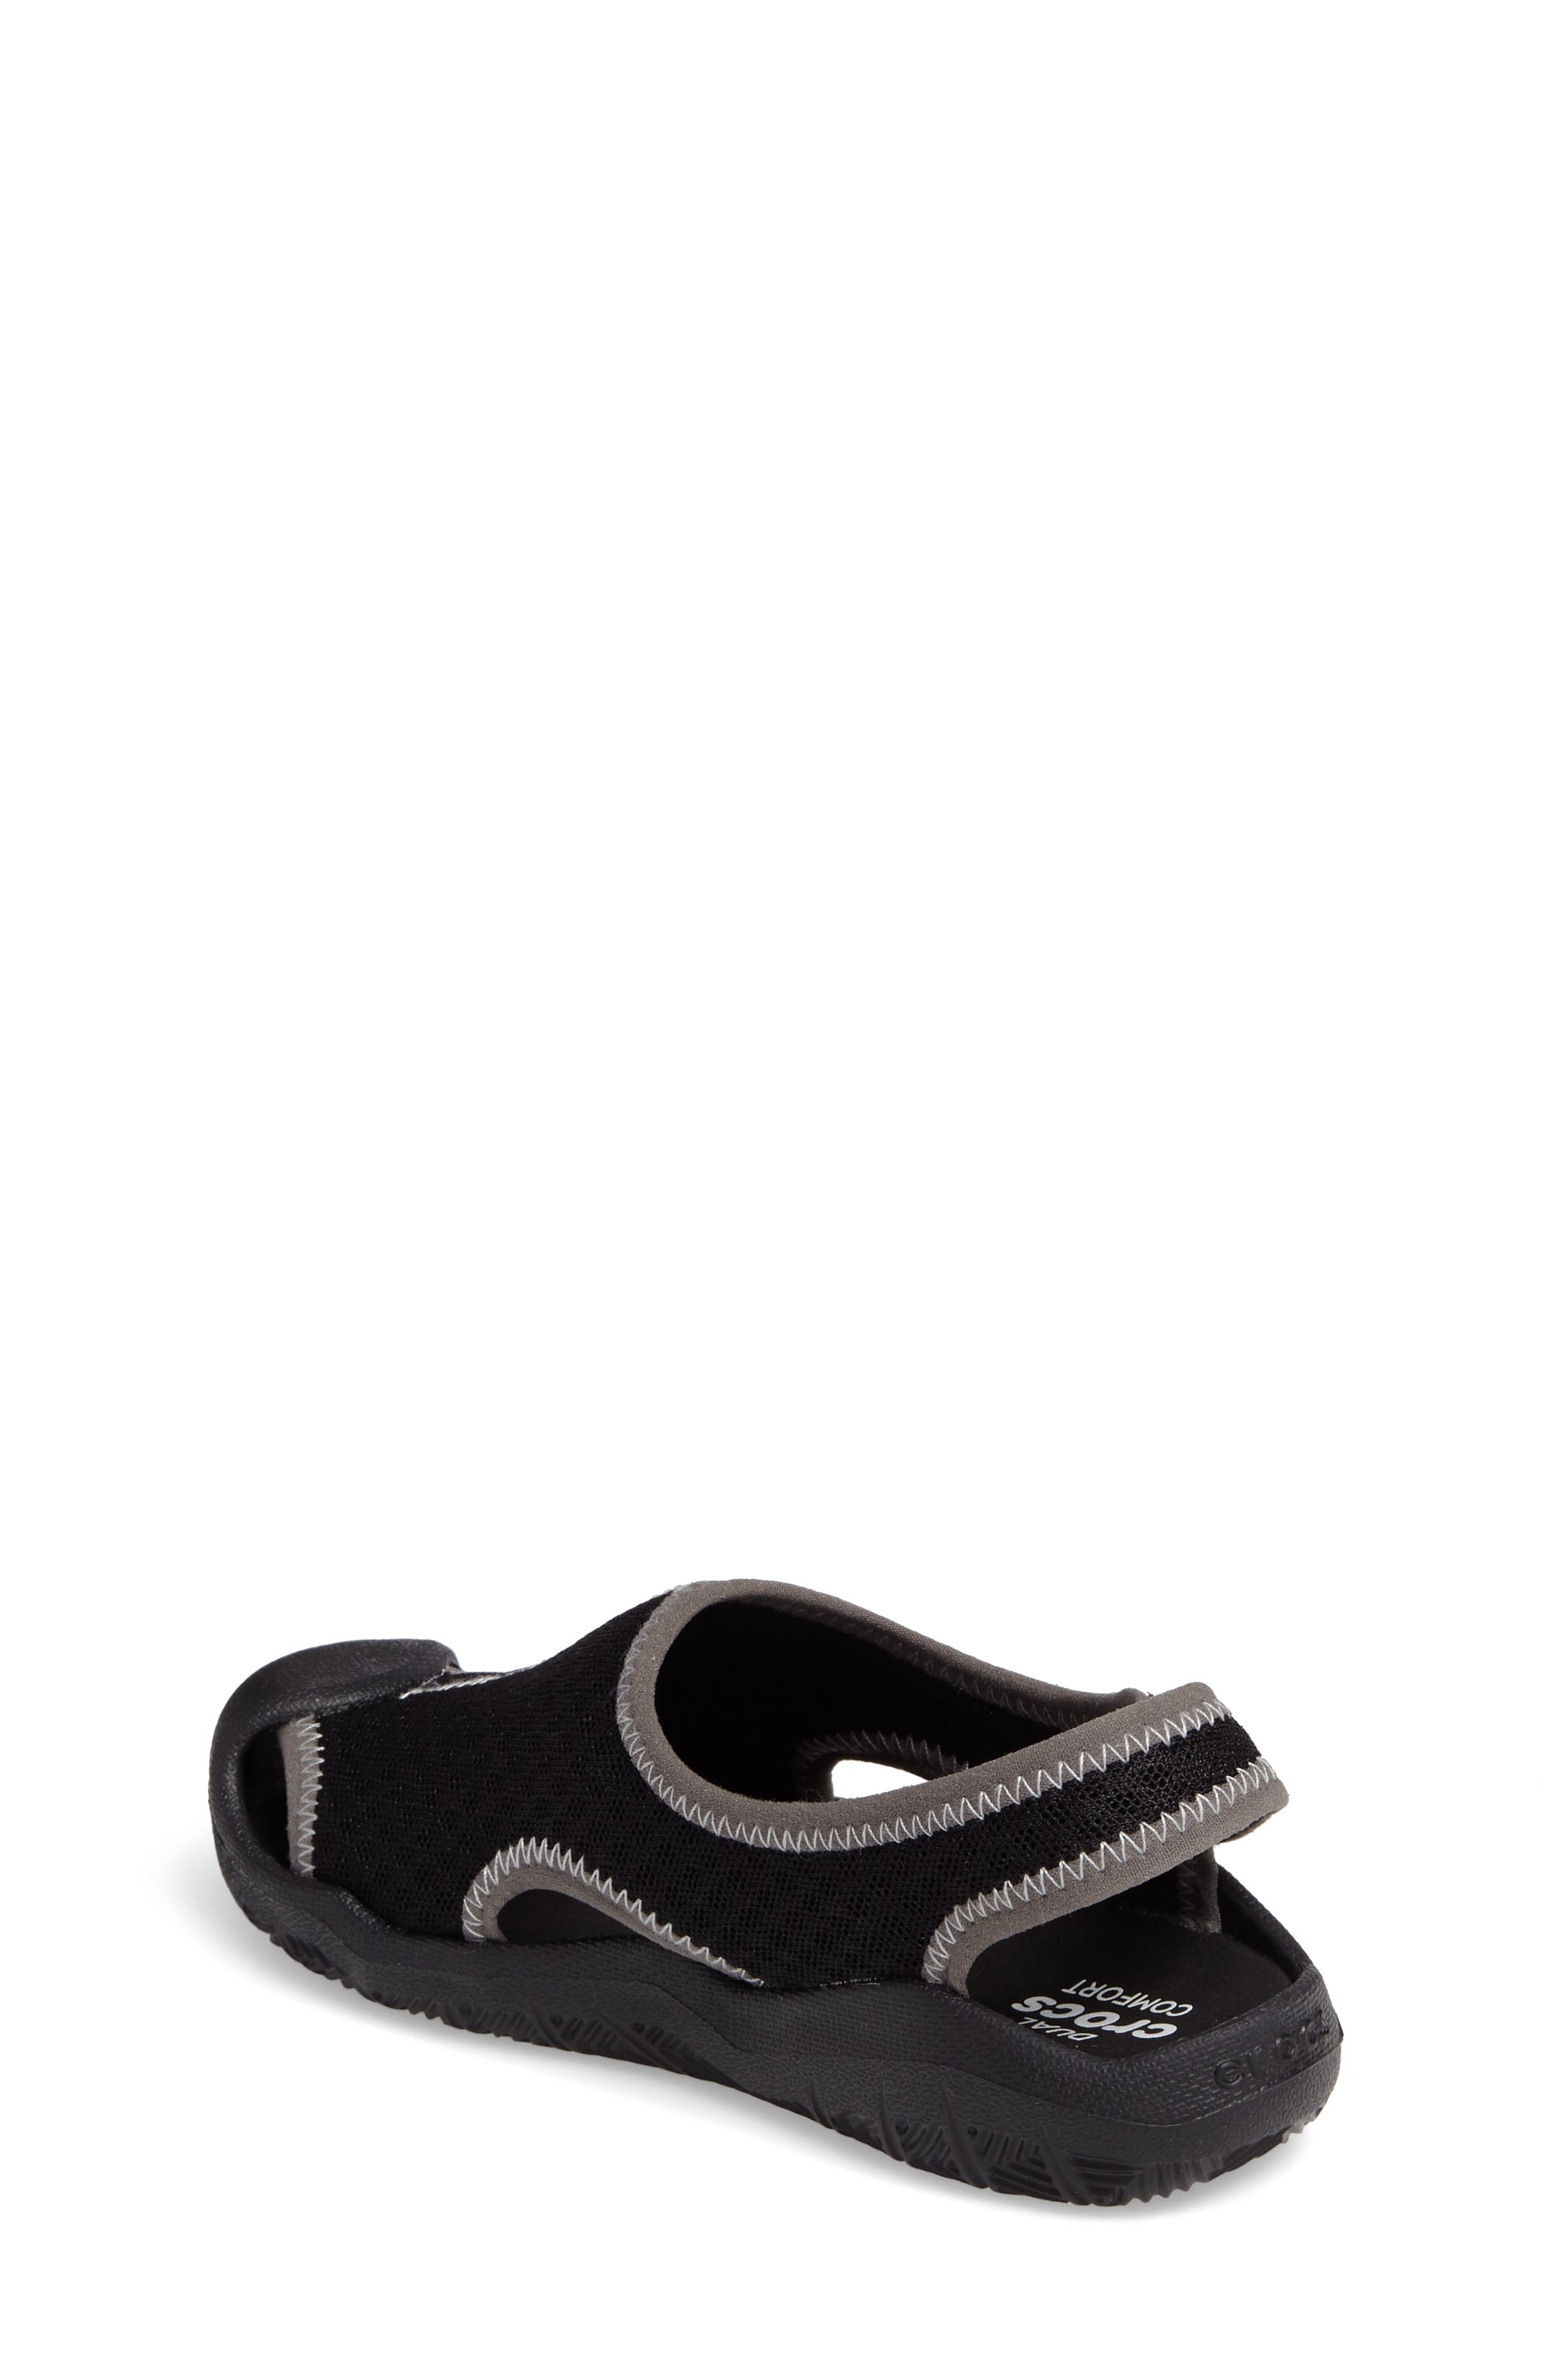 Swiftwater Sandal,                             Alternate thumbnail 12, color,